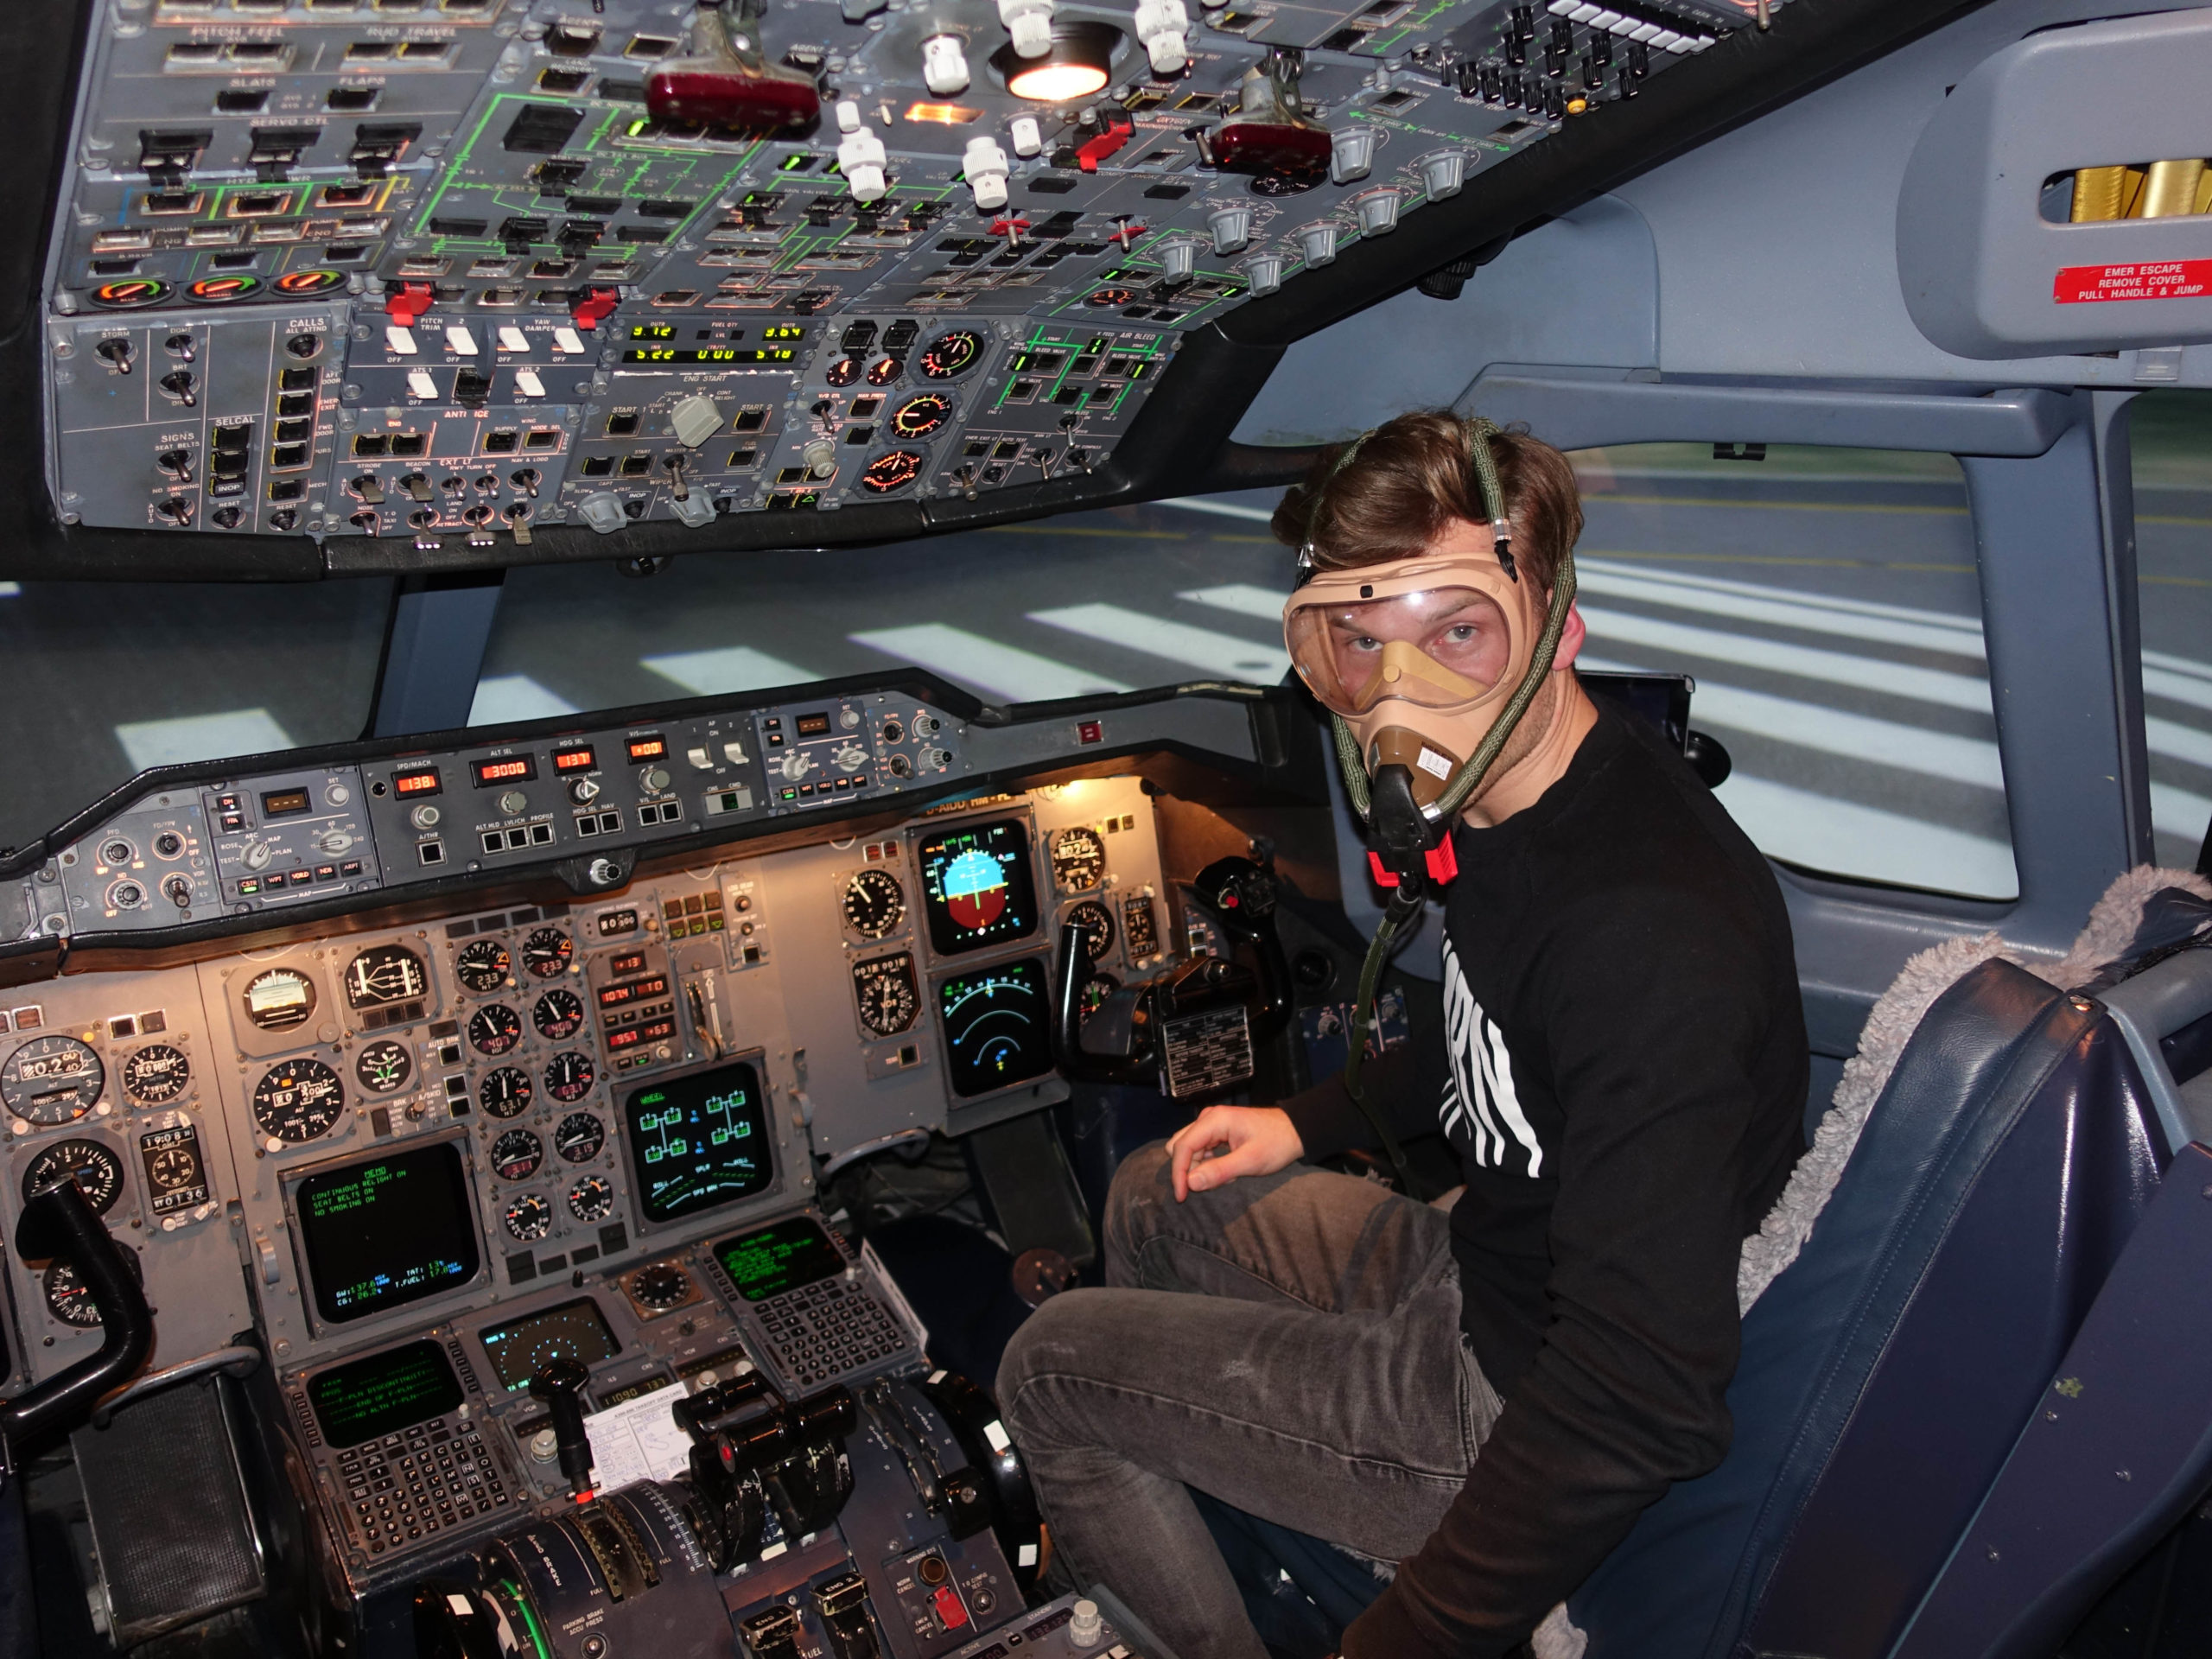 Pilot Patrick A300 simulator cockpit with oxygen mask